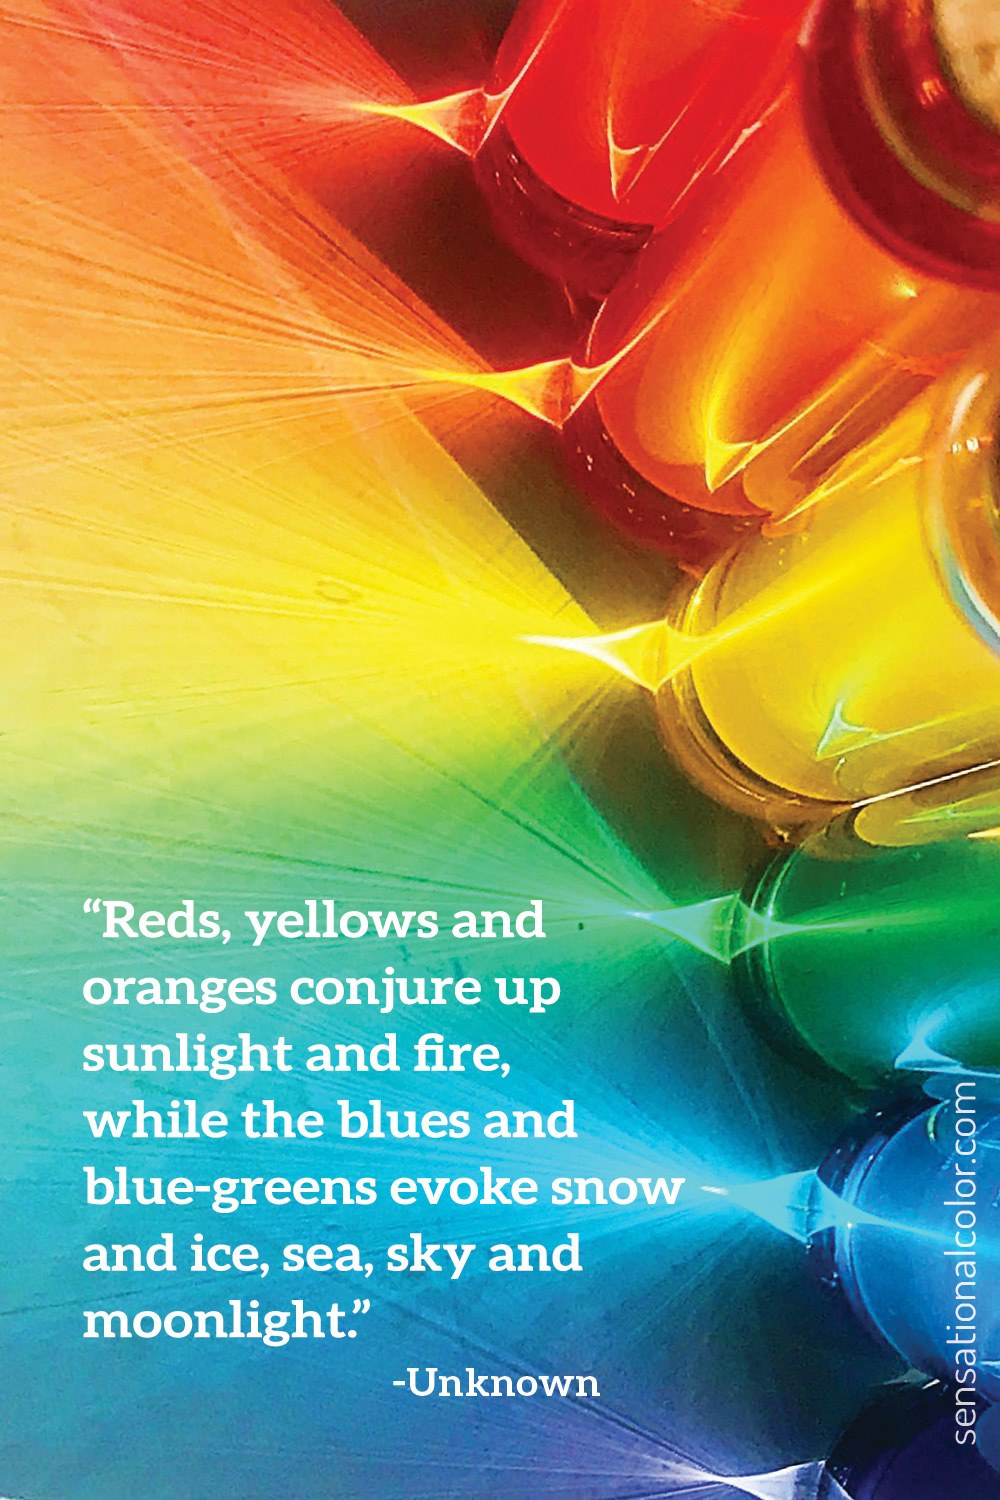 """Reds, yellows and oranges conjure up sunlight and fire, while the blues and blue-greens evoke snow and ice, sea, sky and moonlight."" - Unknown"